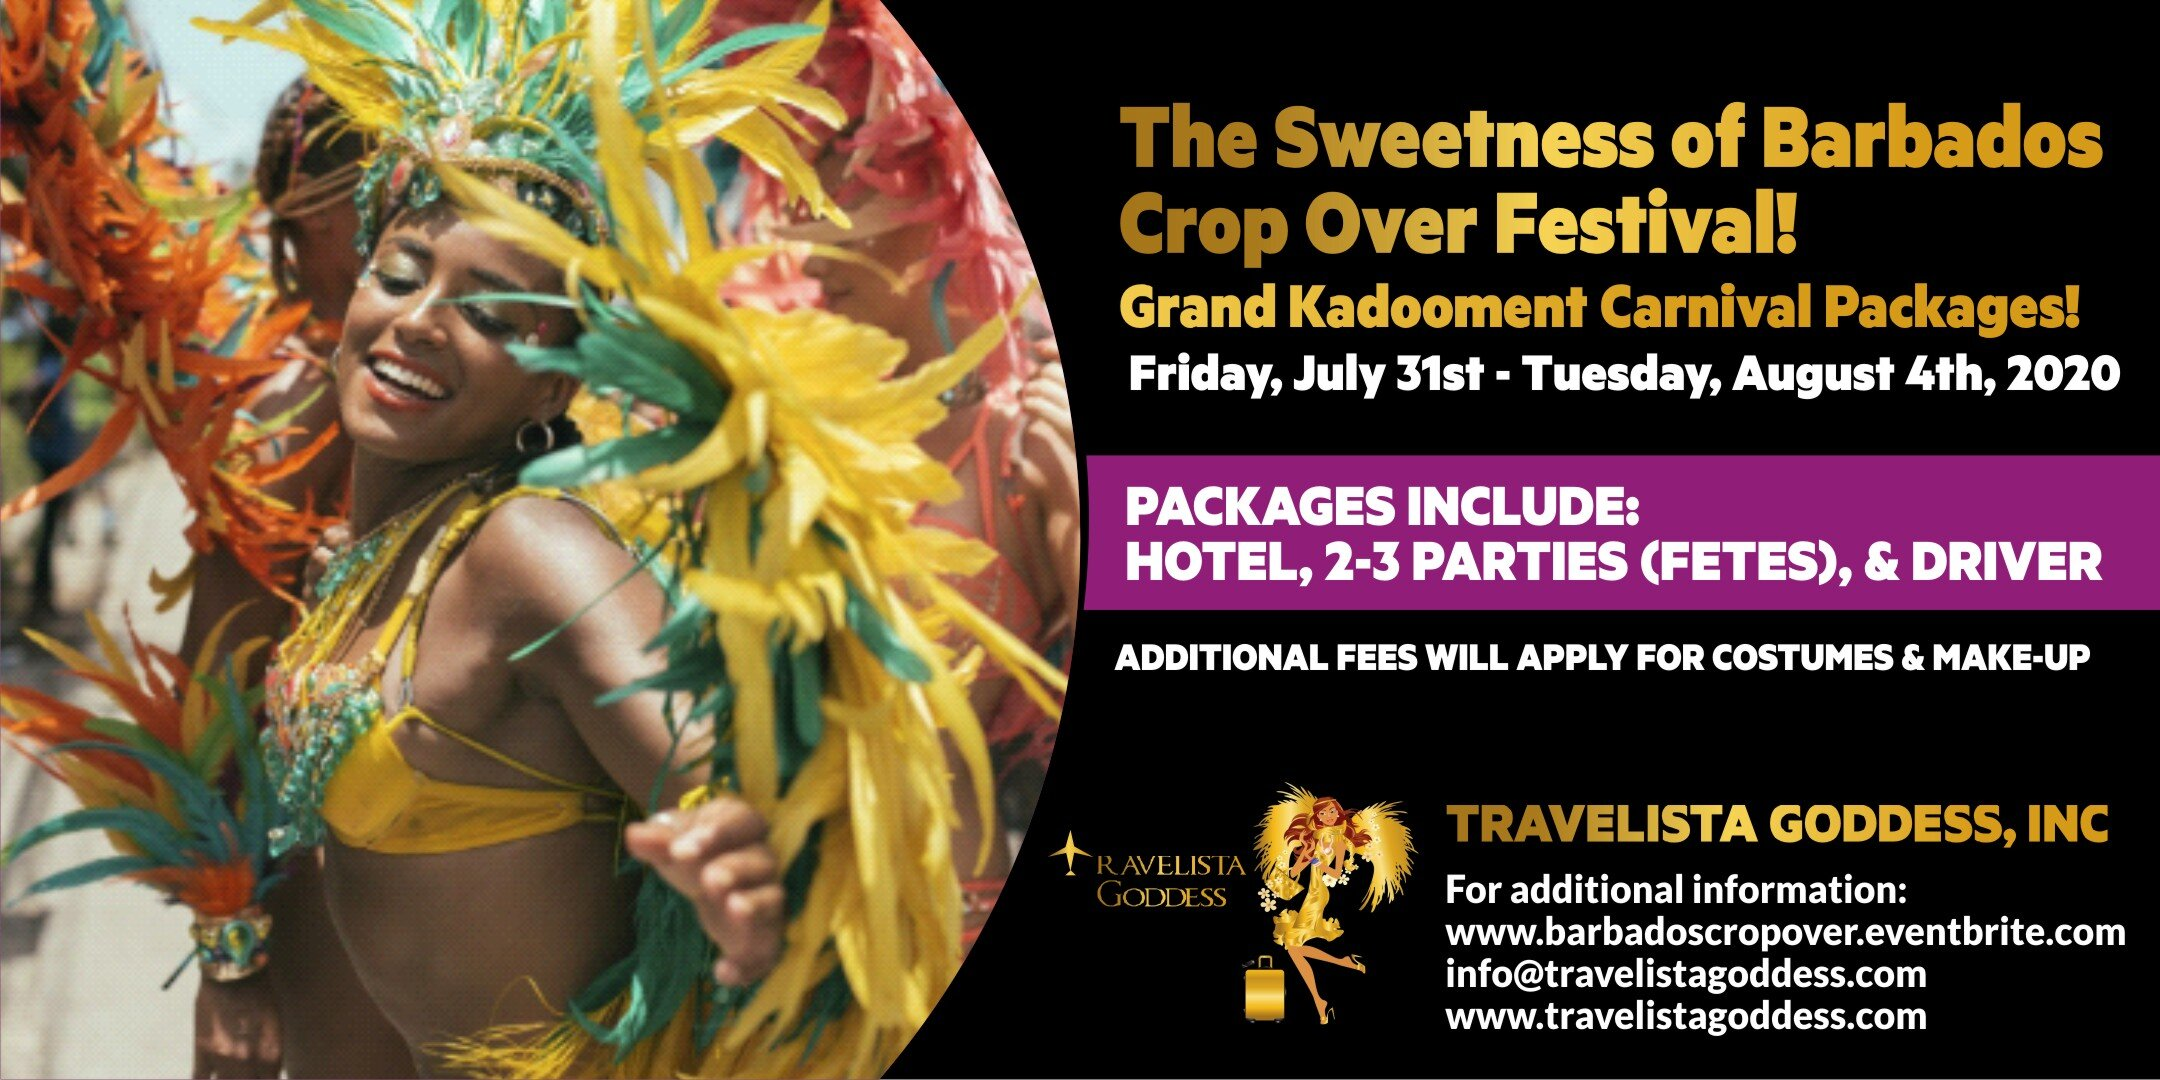 Featured Carnival Package - To book visit    https://barbadoscropover.eventbrite.com